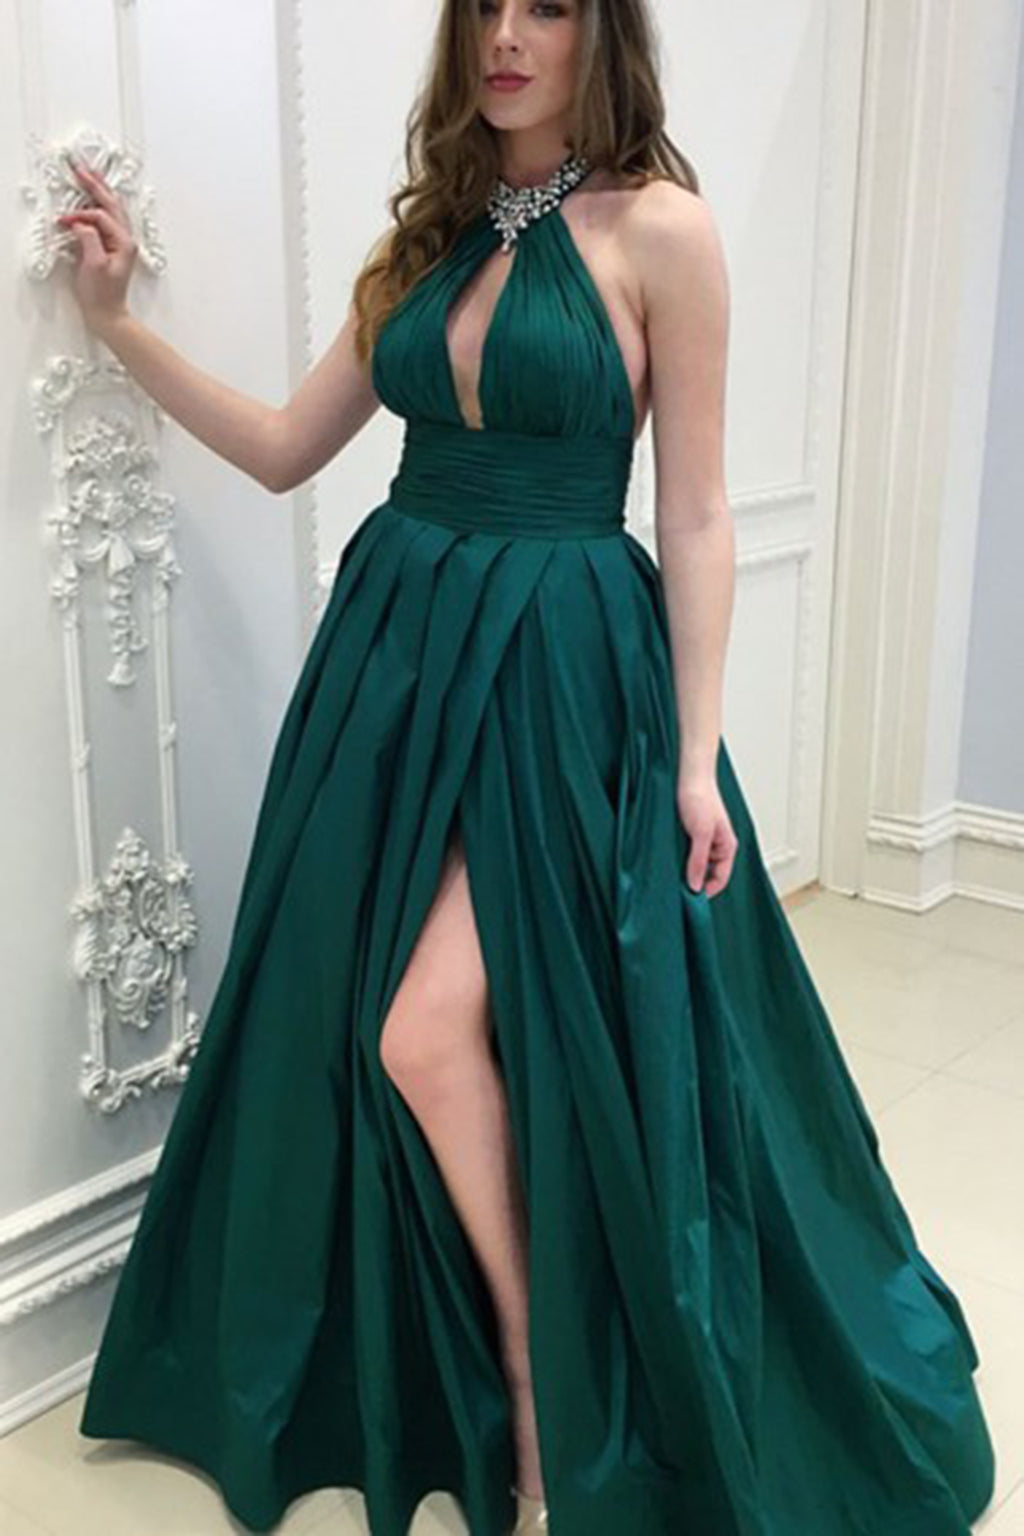 Sexy Slit Dark Green Evening Party Dress - daisystyledress